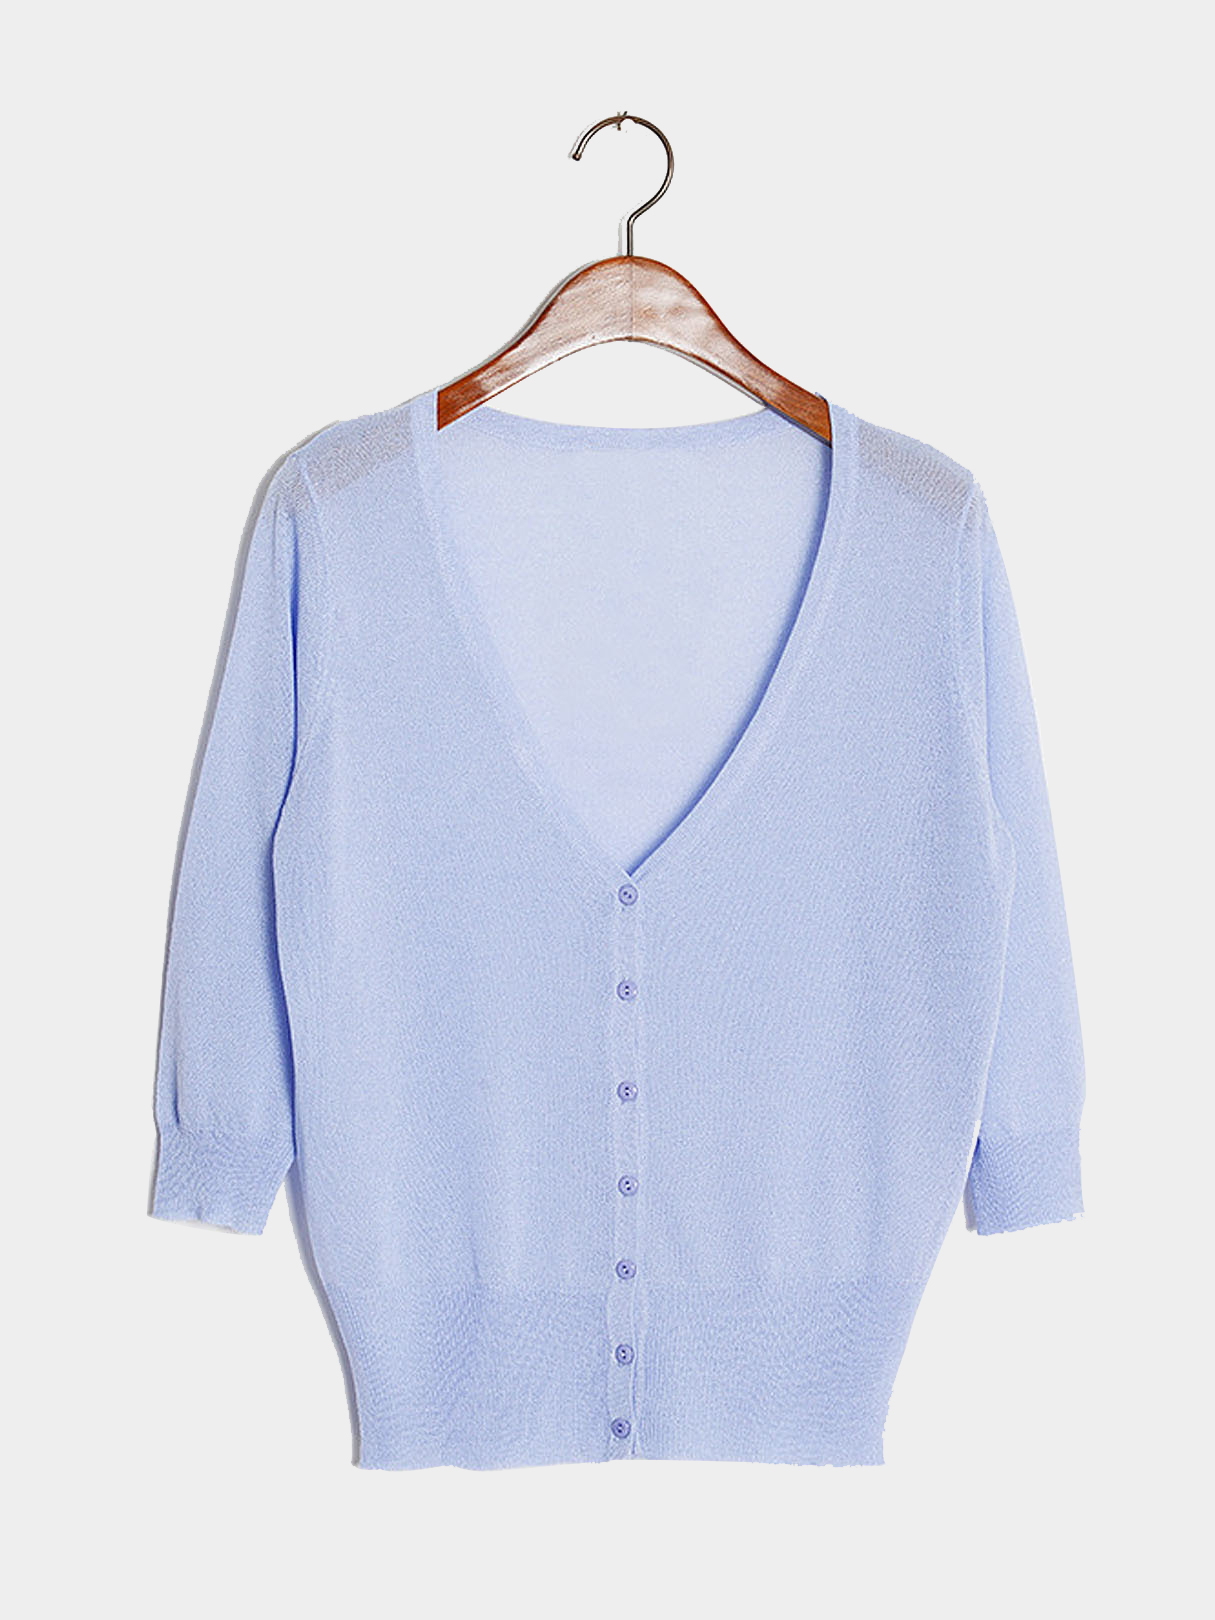 Yoins Baby Blue Lightweight Knit Mini Cardigan